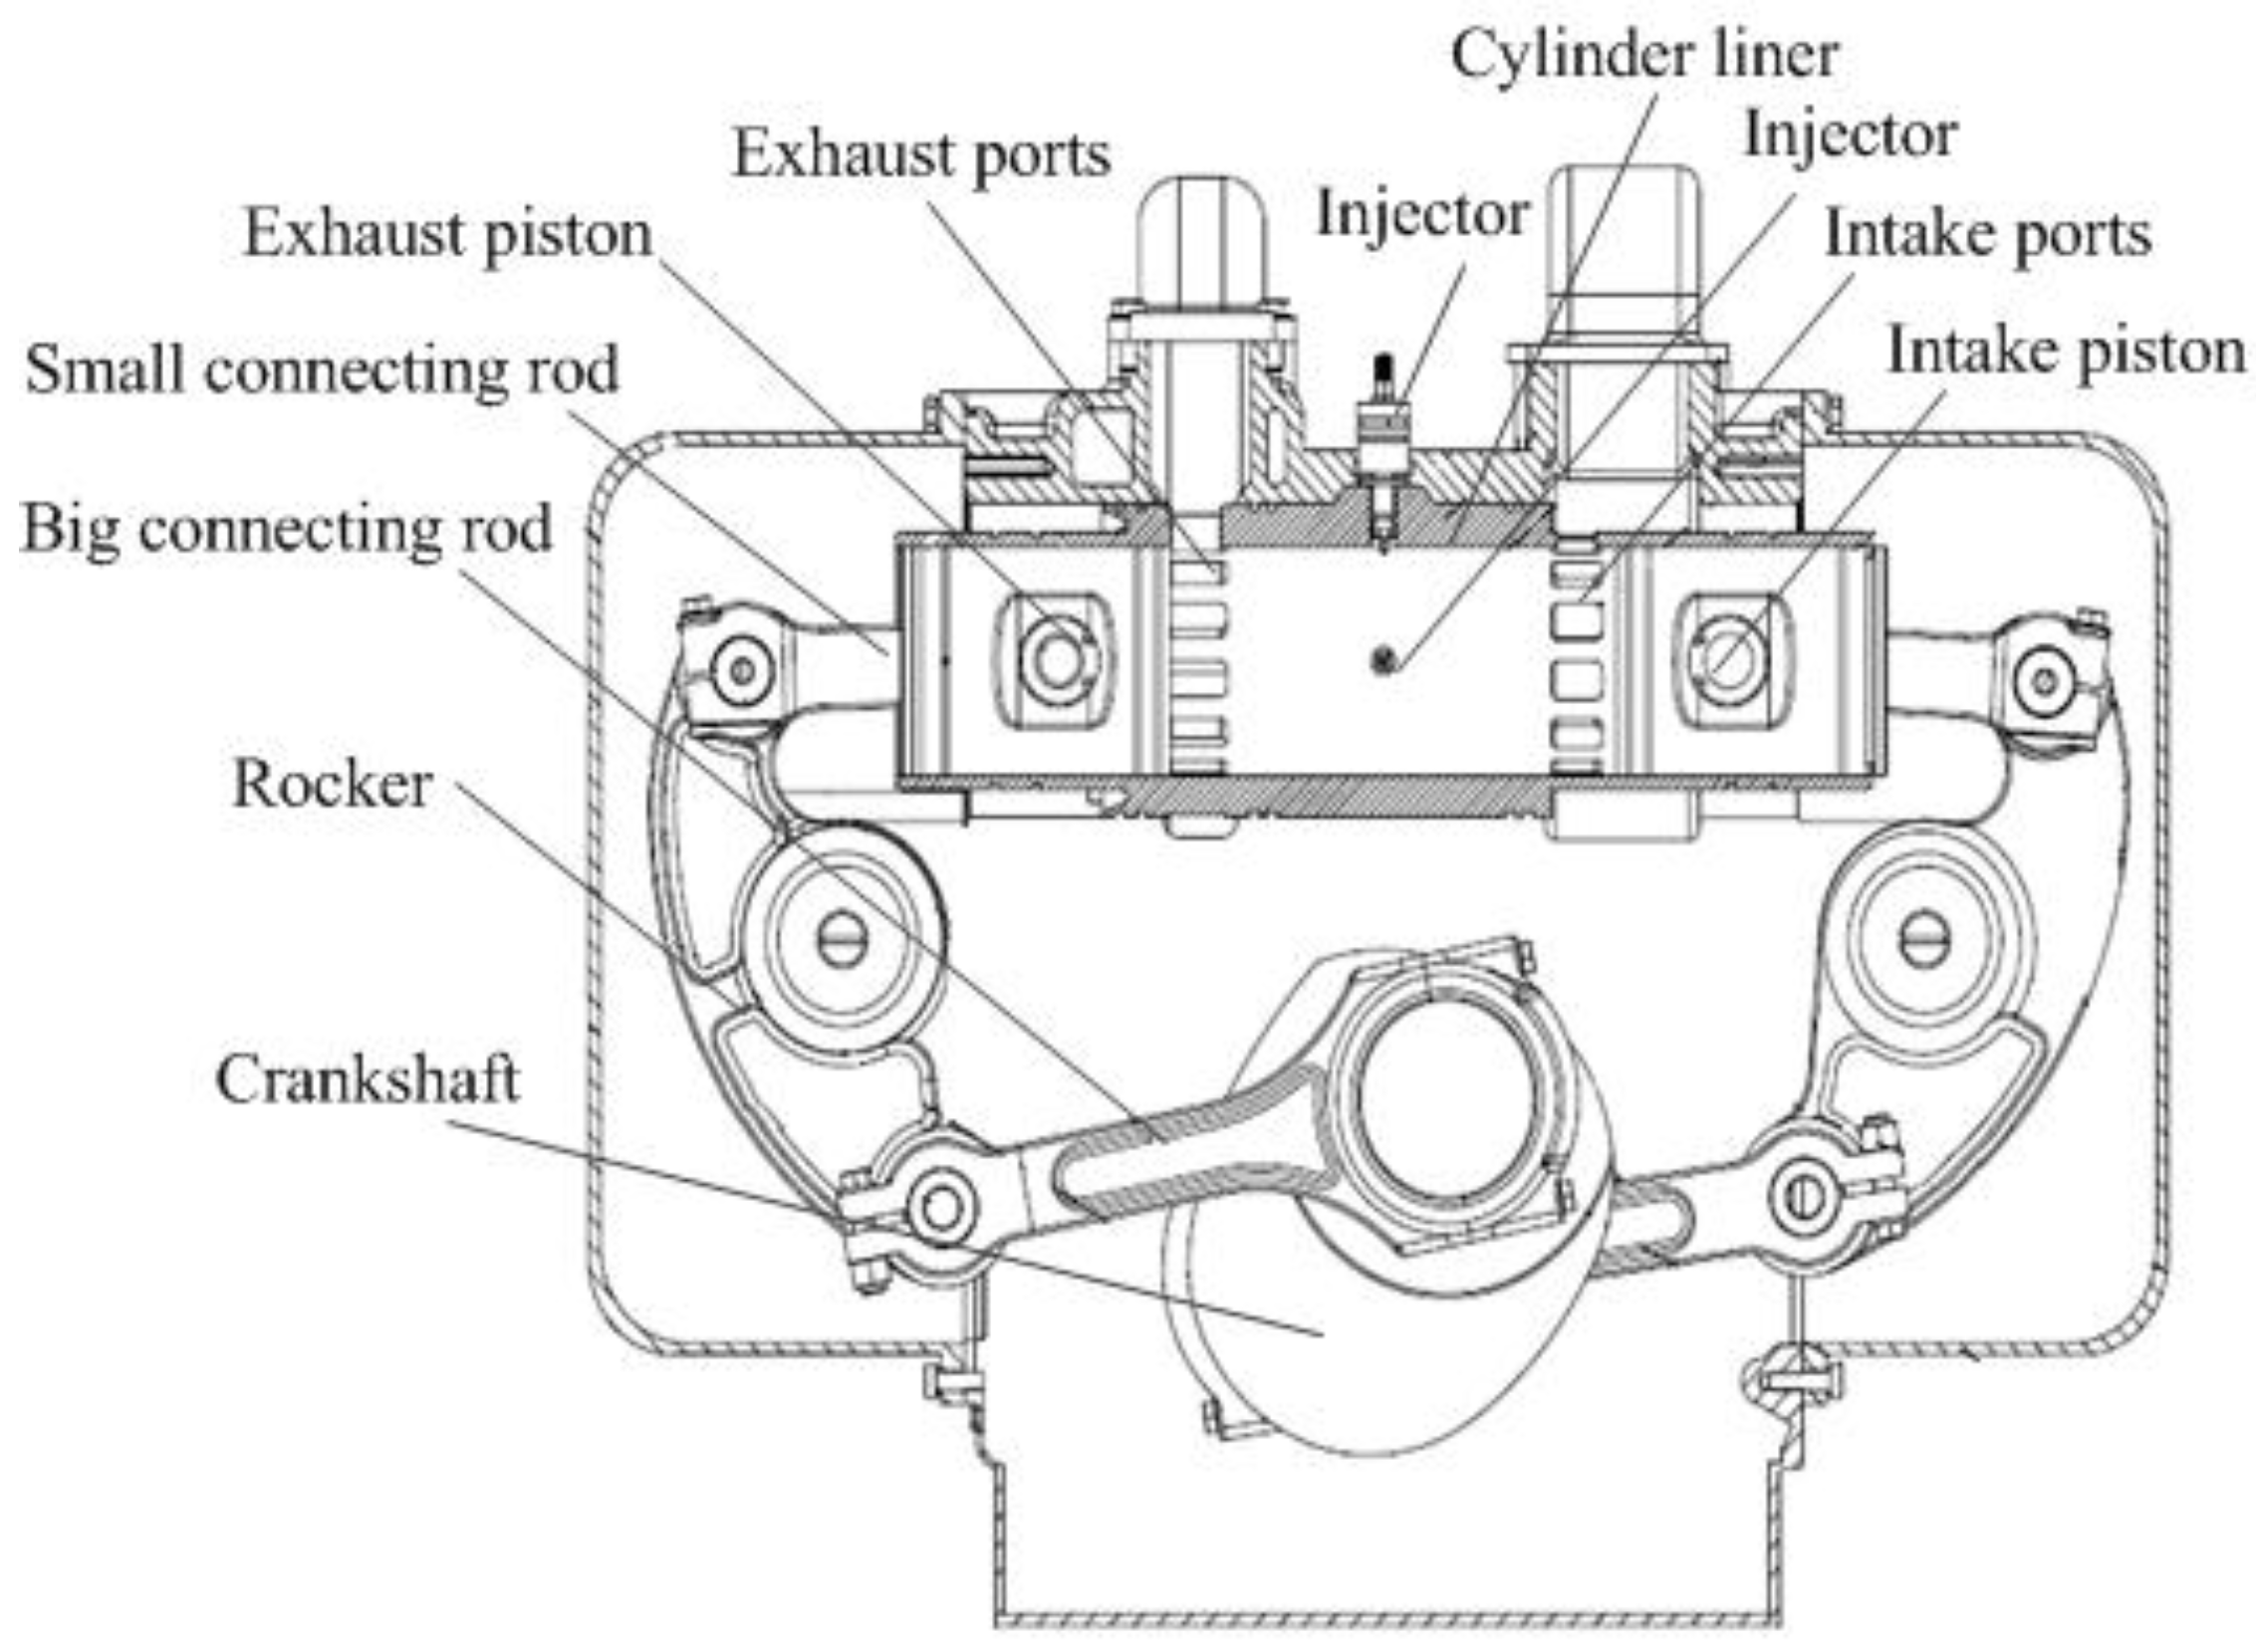 ments as well Htm additionally Window Parts Diagram Jeep Tj Wrangler together with Brush Grapple 48 In With Flat Face Couplers besides The History Of Fords Iconic Flathead Engine. on 4 cylinder vs 6